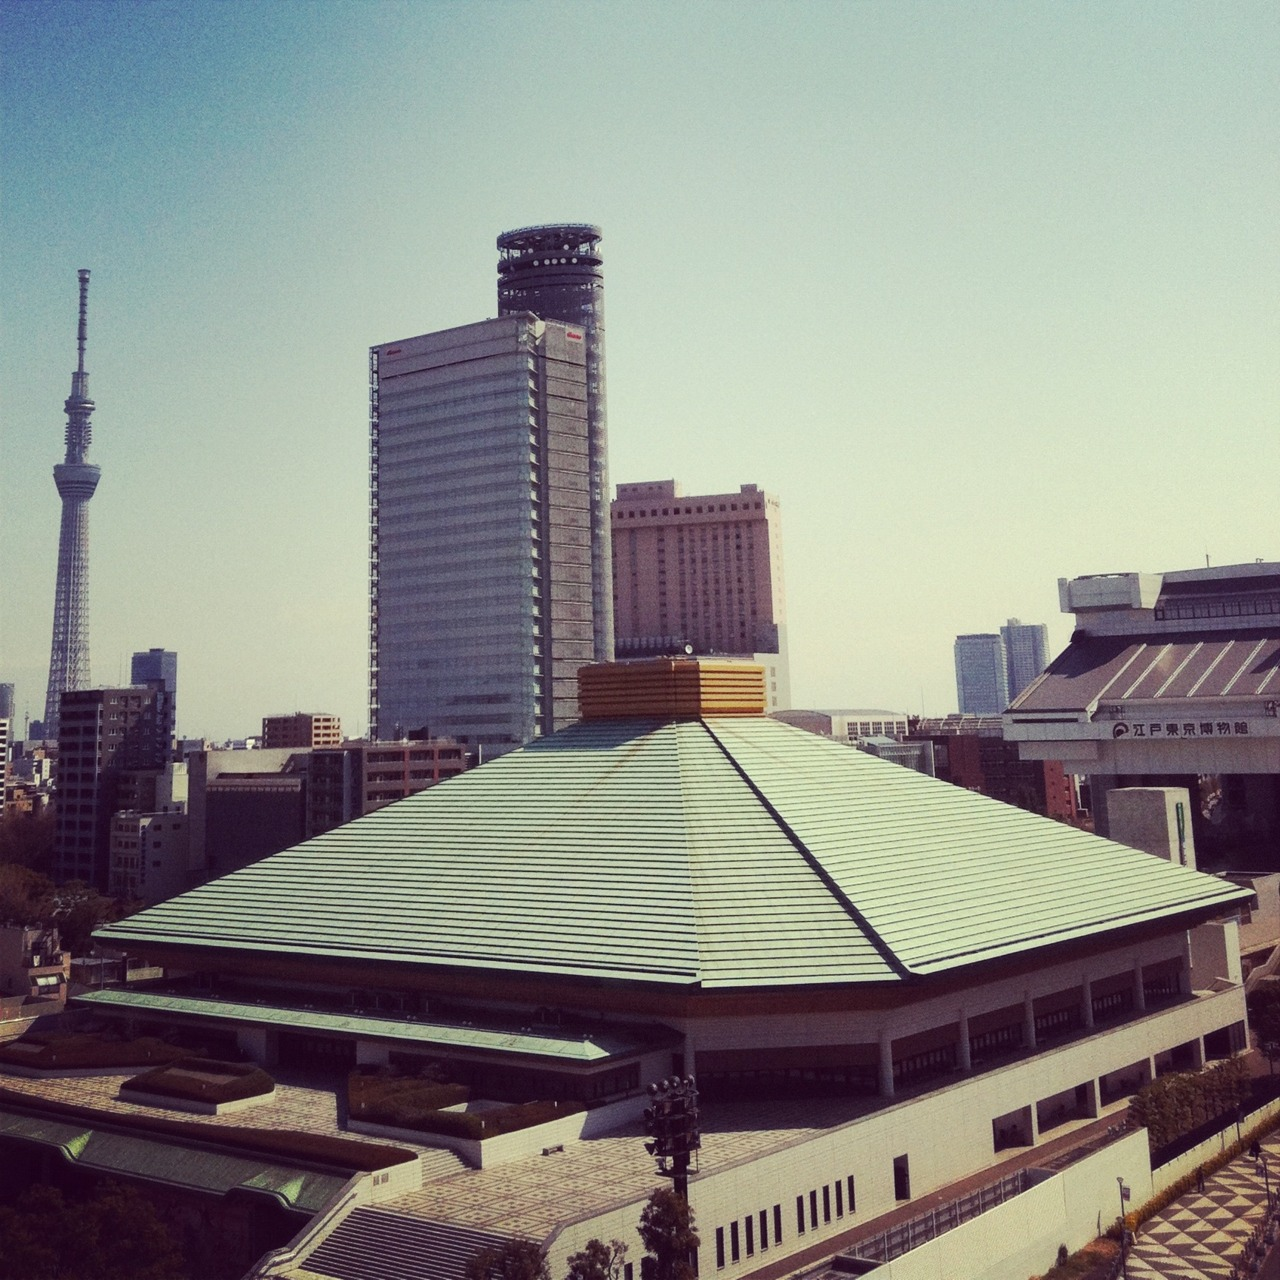 A view from one of our hotel rooms.  That greenish roofed building is the Tokyo Sumo Stadium.